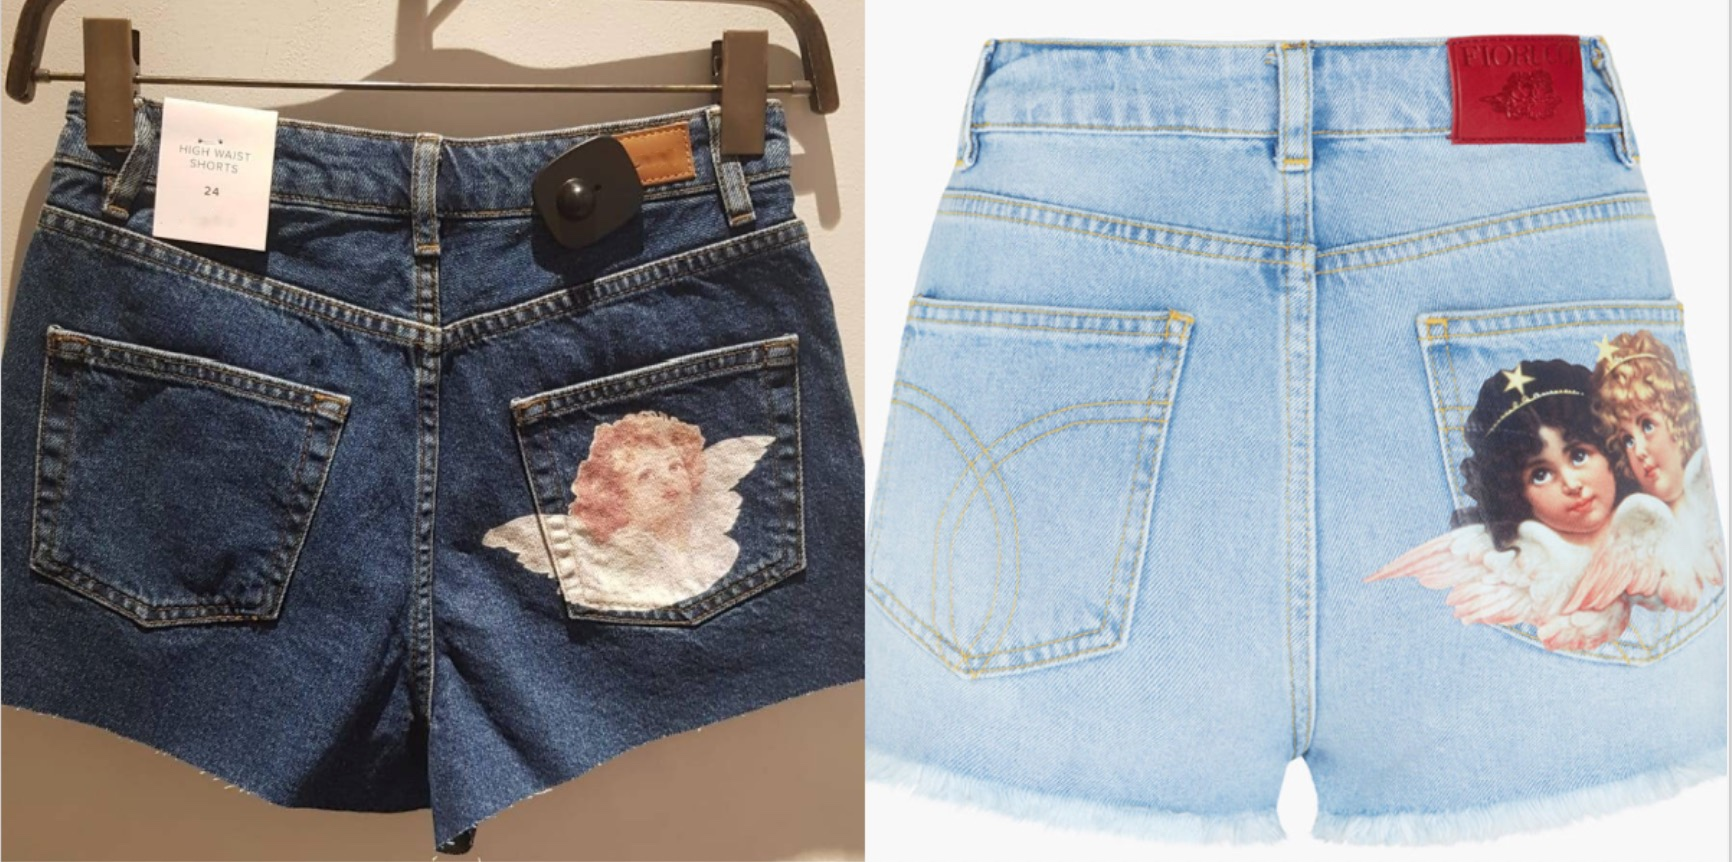 Left image shows dark denim shorts with an angel printed on the right pocket, compared to the image on the right which features the original design by Fiorucci, light denim shorts with angels printed on the right pocket.